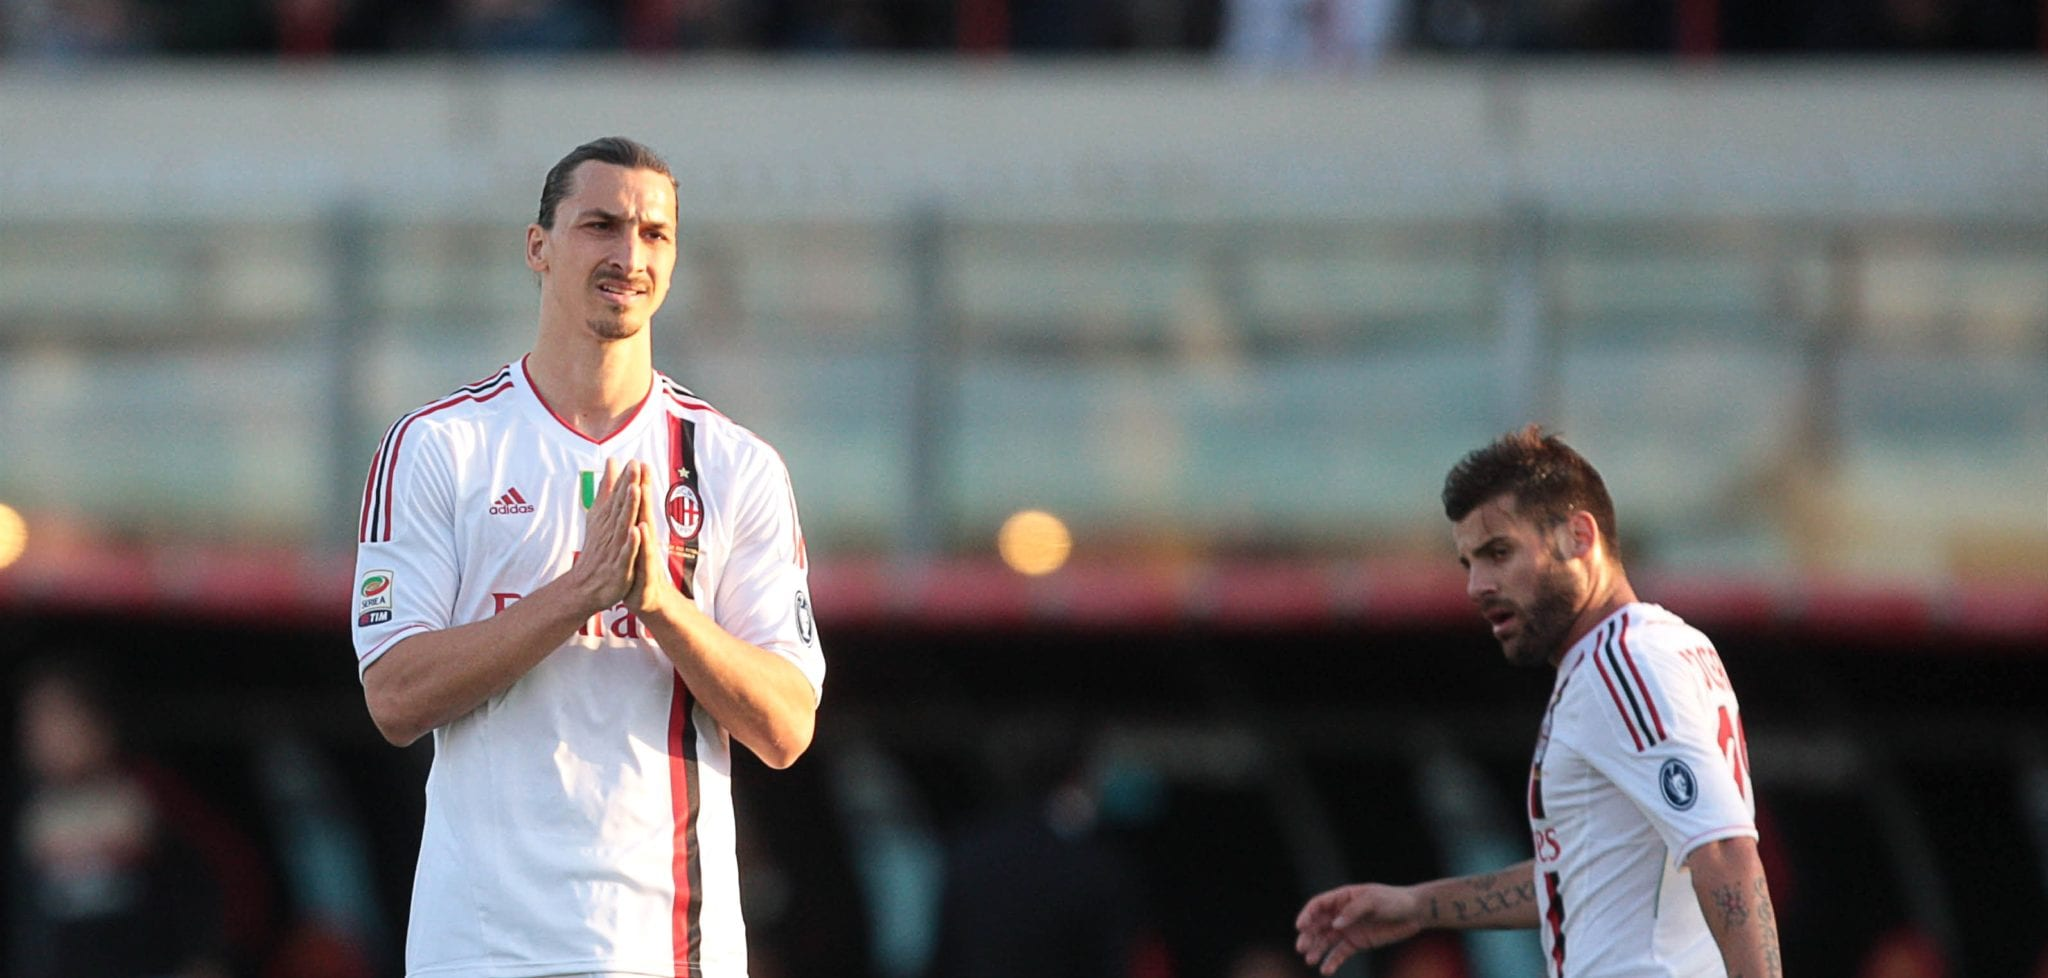 zlatan ibrahimovic | © Marcello Paternostro/AFP/Getty Images